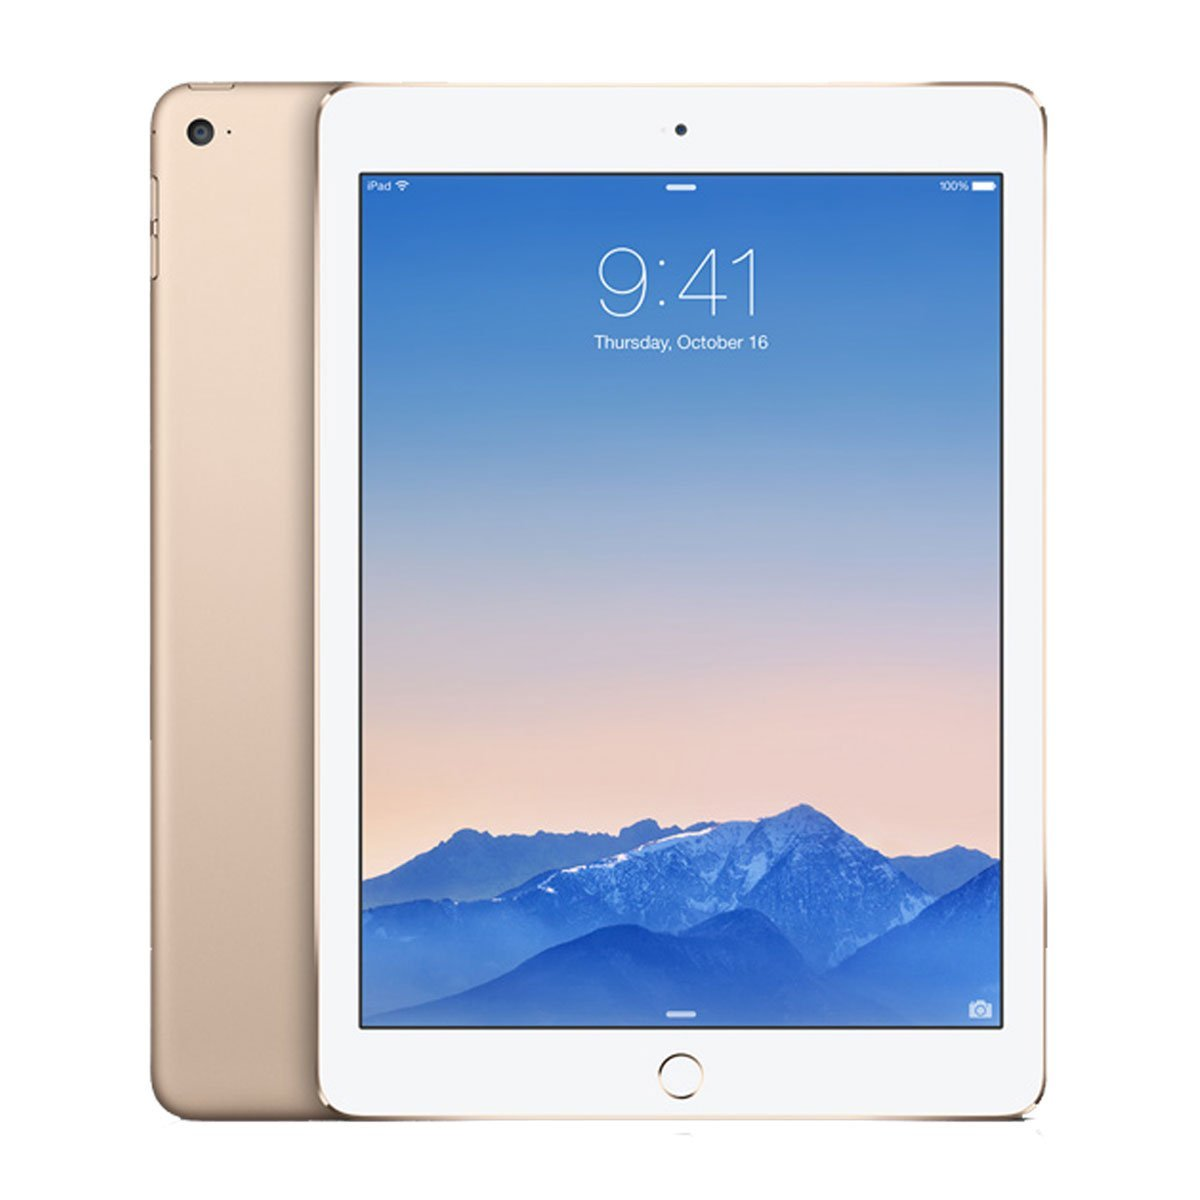 Apple iPad Pro 10.5-inch 64GB WiFi Only, Gold (Renewed)